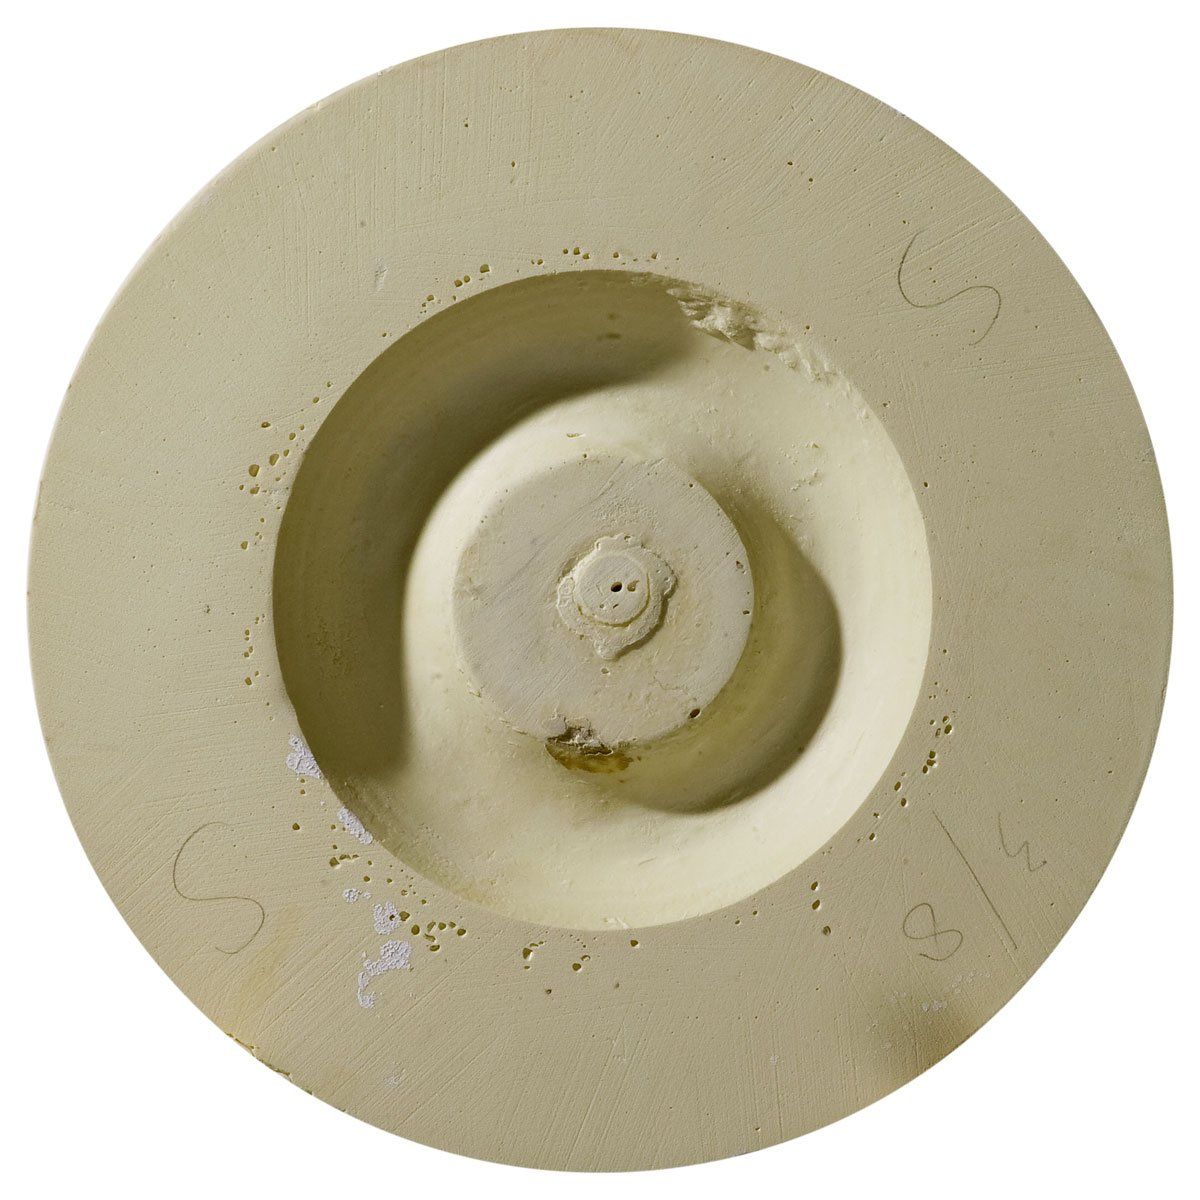 Ekena Millwork CM14TR2-03500 14 3/4OD x 3 1/2ID x 1 3/4P Traditional Ceiling Medallion, Fits Canopies up to 4, 2 Piece Fits Canopies up to 4